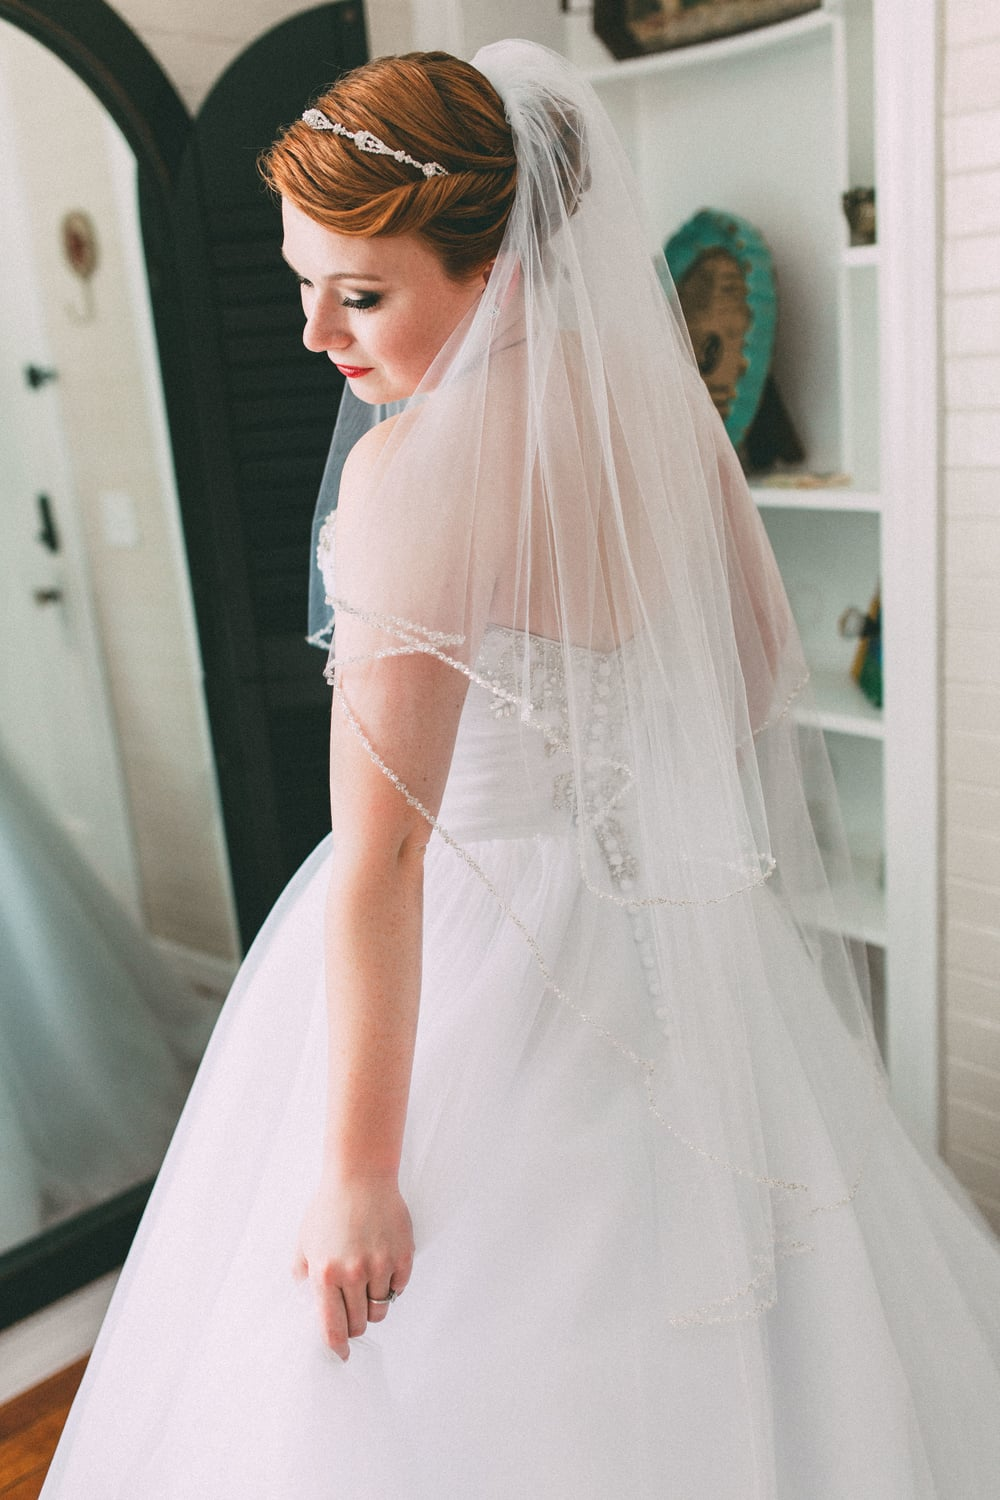 Up The Creek Farms, Palm Bay, Brevard County FL Wedding, bridal suite, bride with veil photo